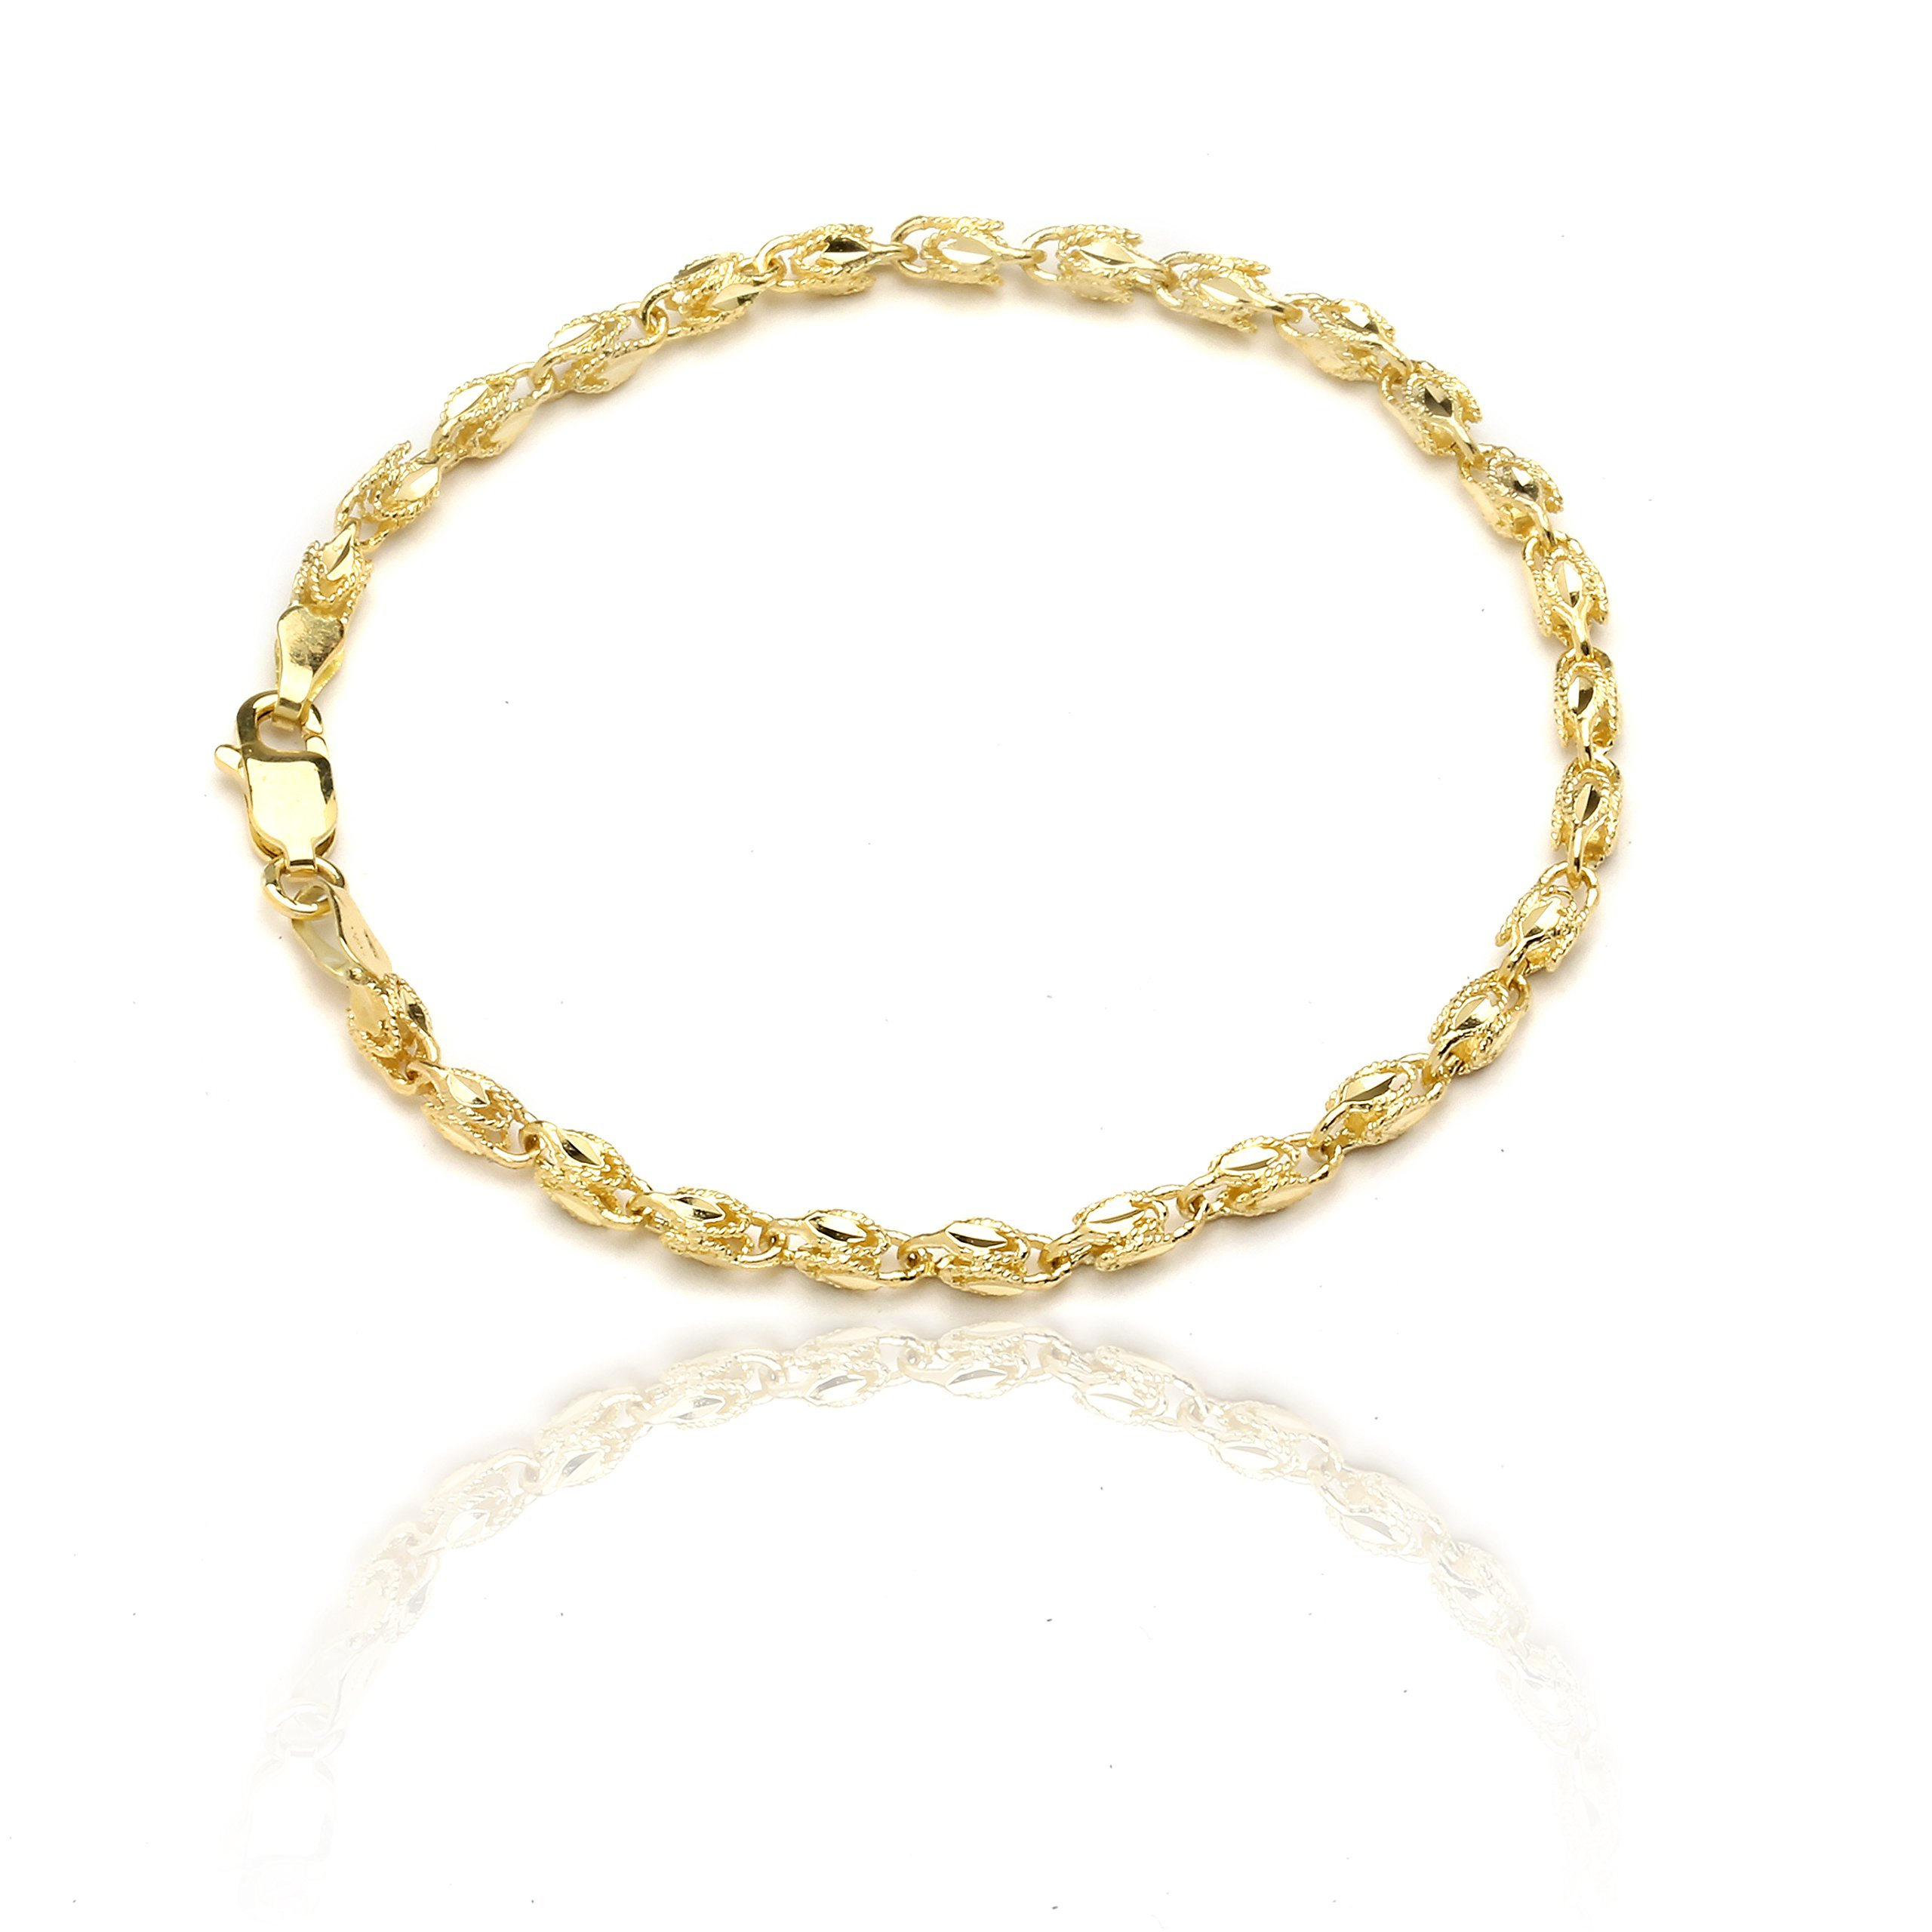 7 Inch 10k Yellow Gold Turkish Rope Chain Bracelet and Anklet for Women and Men,(3.5mm)